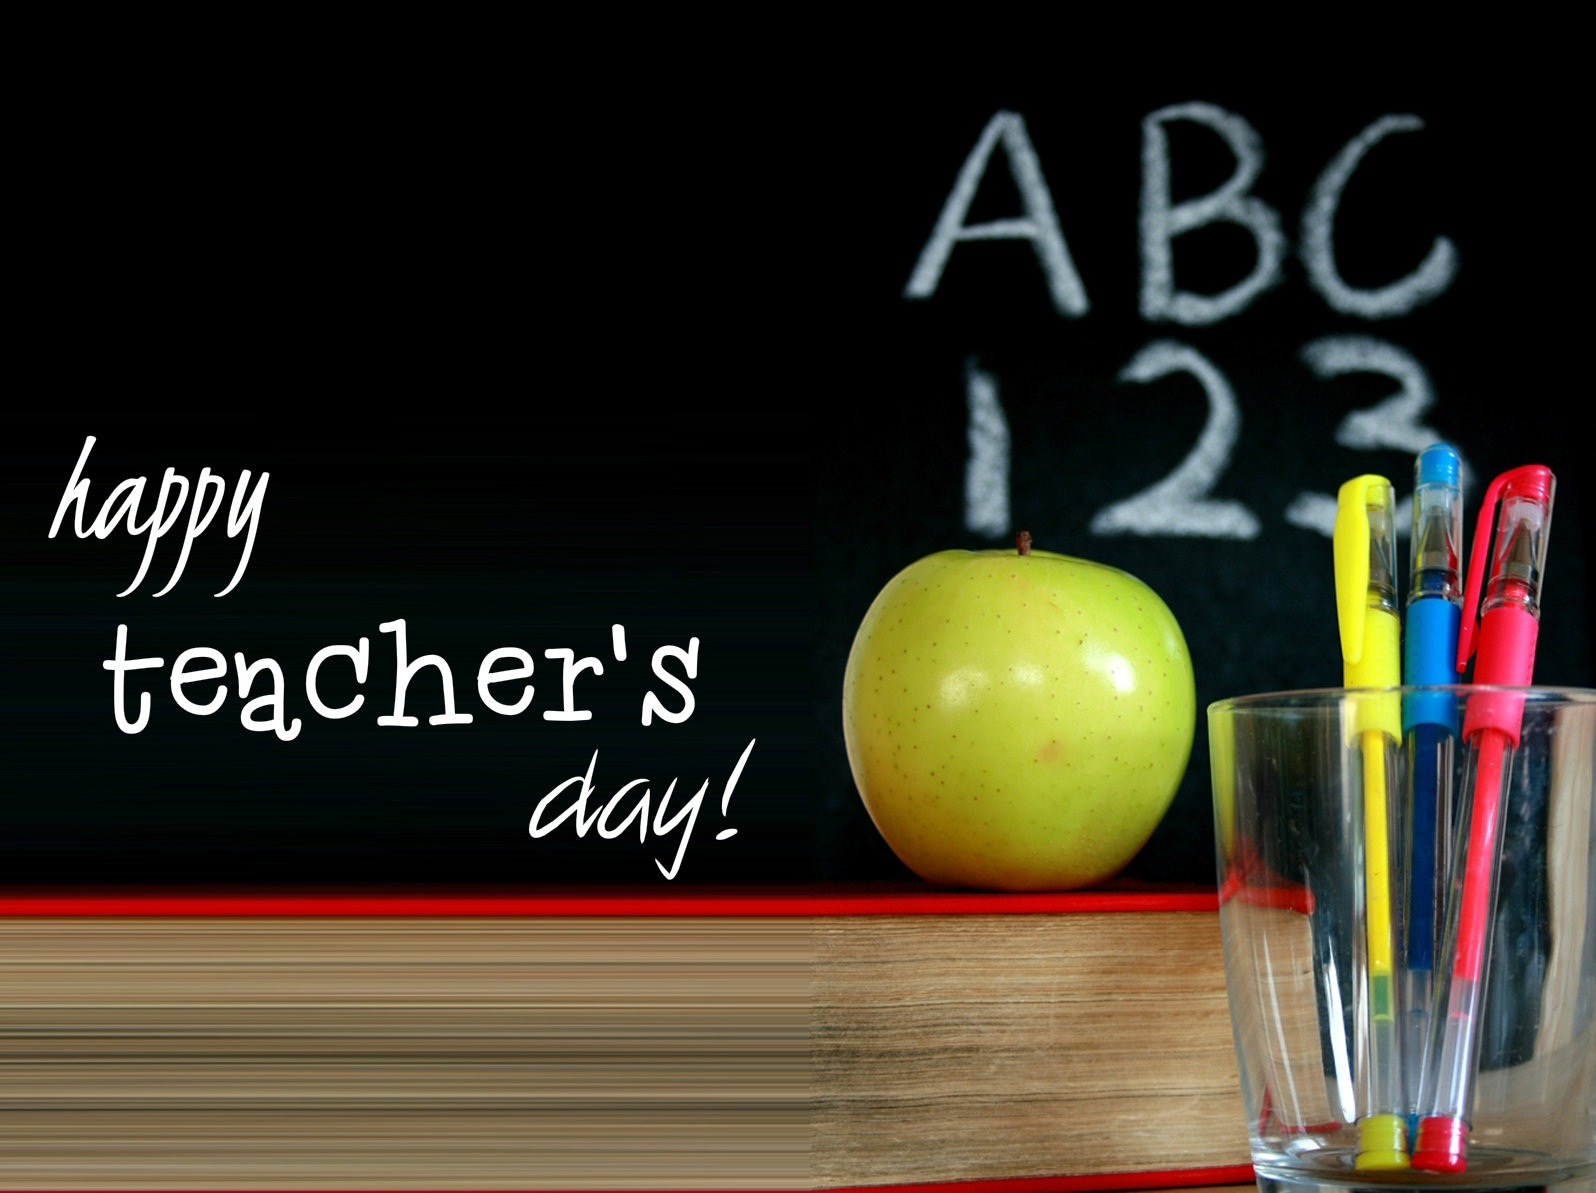 Teacher's Day Wallpaper